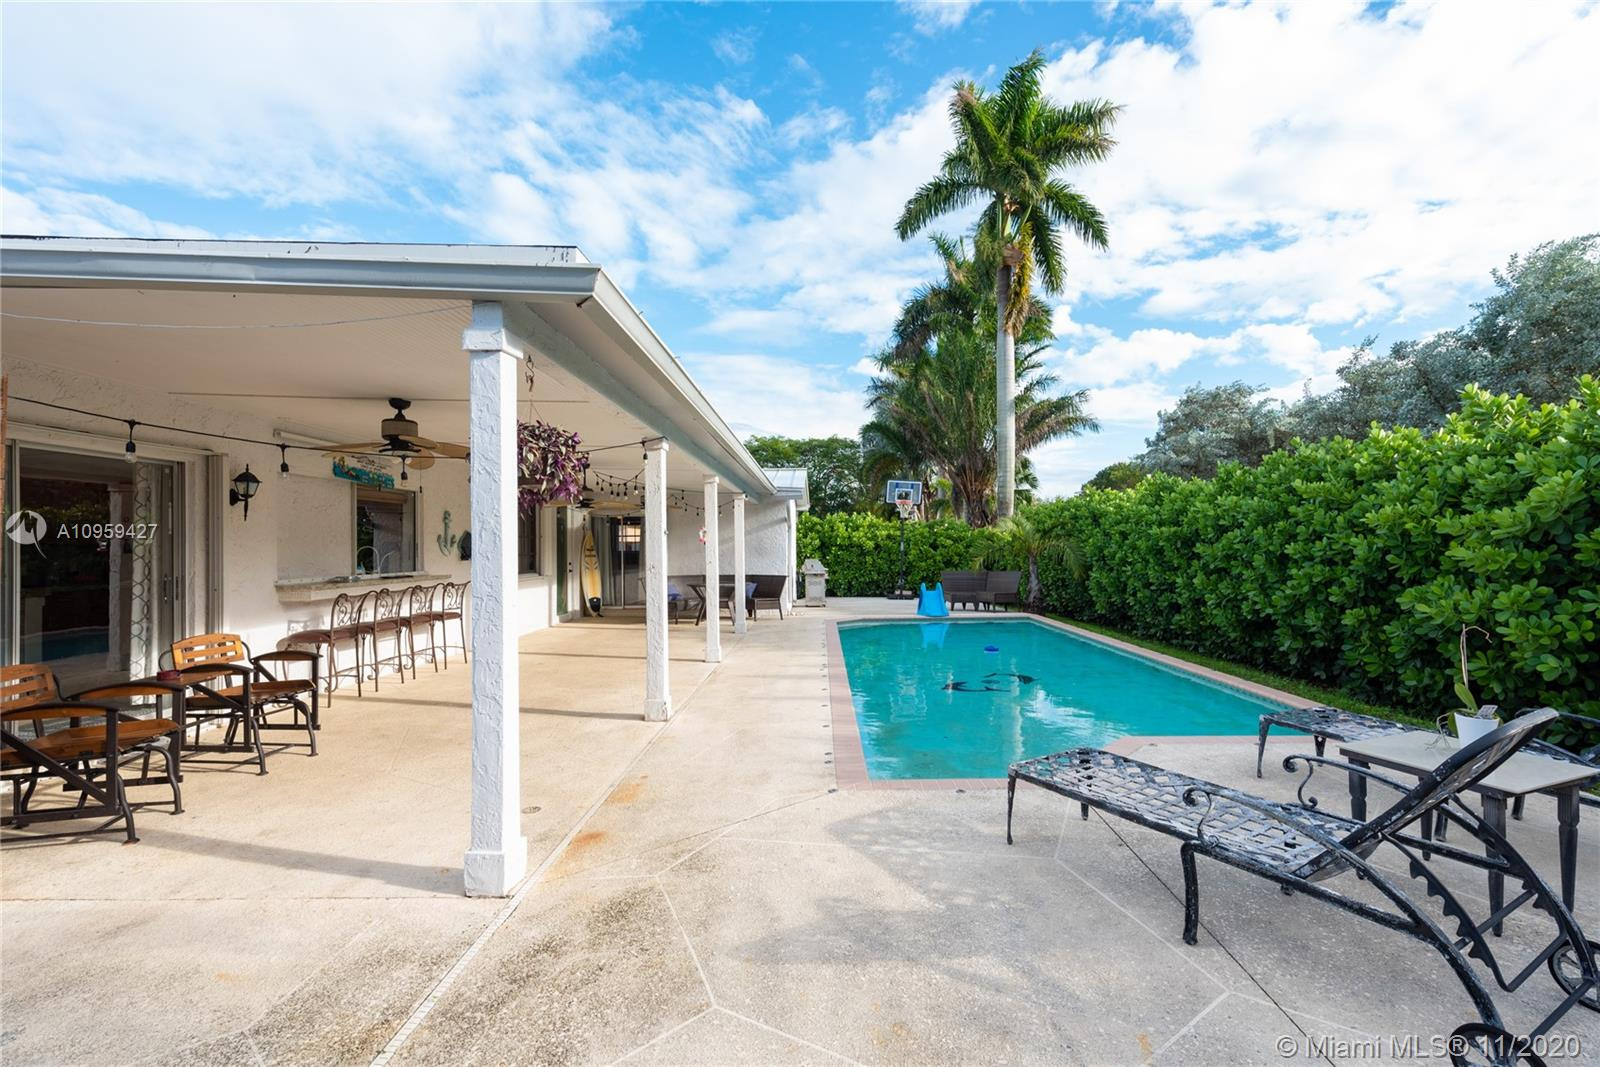 20110 SW 84th Pl, Cutler Bay, Florida 33189, 4 Bedrooms Bedrooms, ,2 BathroomsBathrooms,Residential,For Sale,20110 SW 84th Pl,A10959427